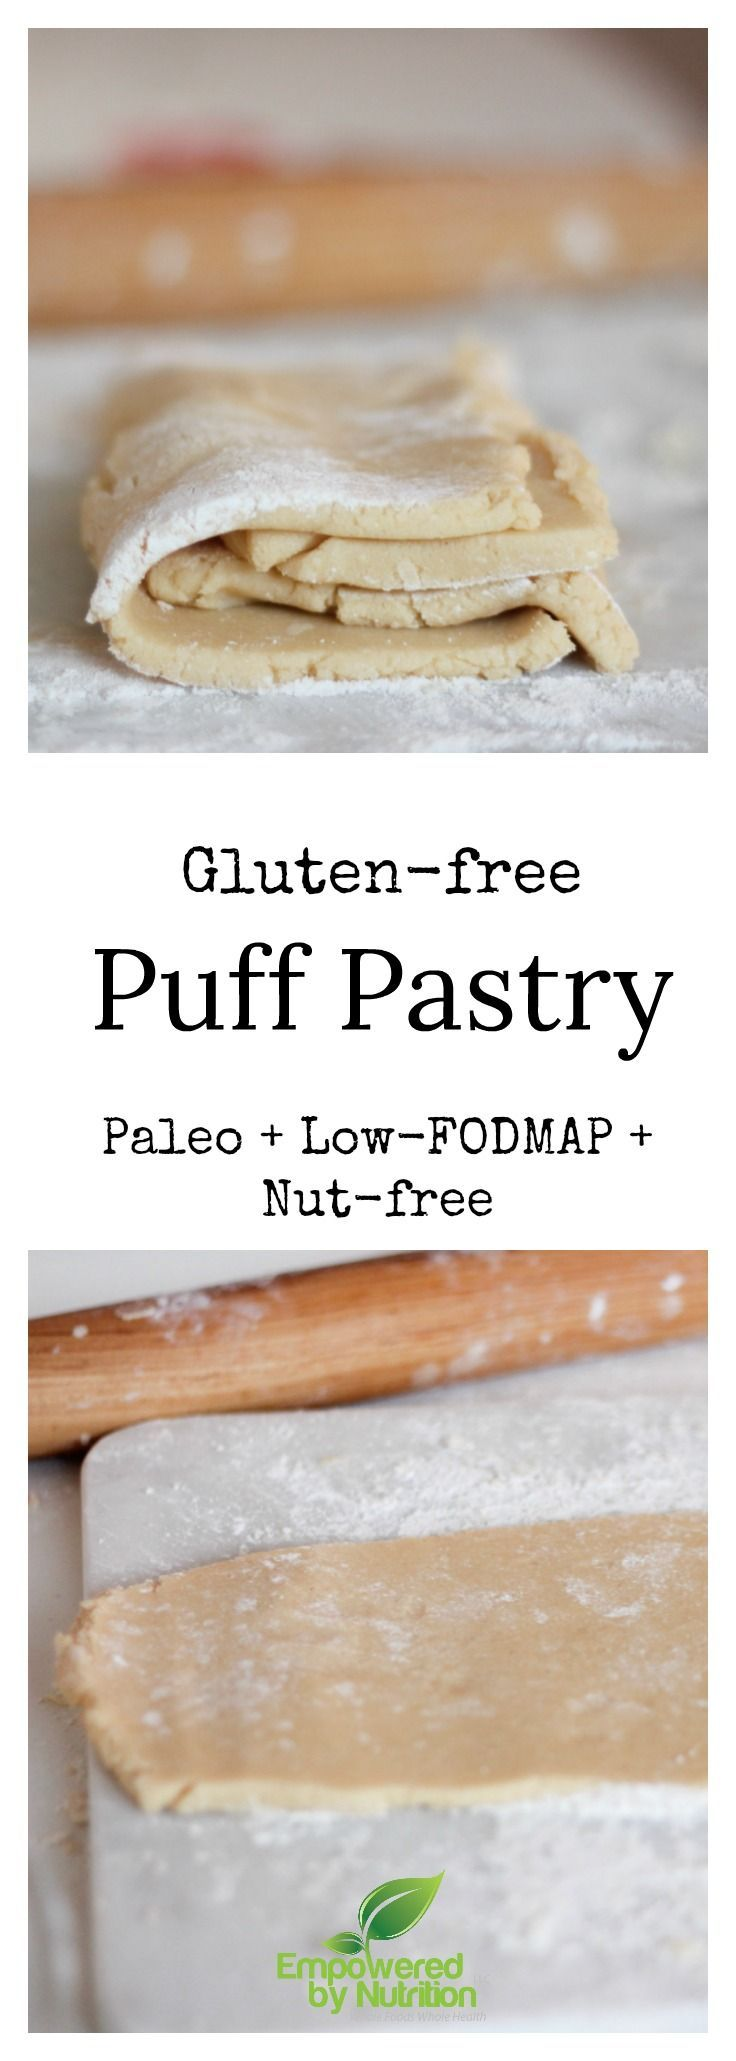 Flaky gluten-free. paleo, AIP and low-FODMAP puff pastry crust. Valentine's recipe included!